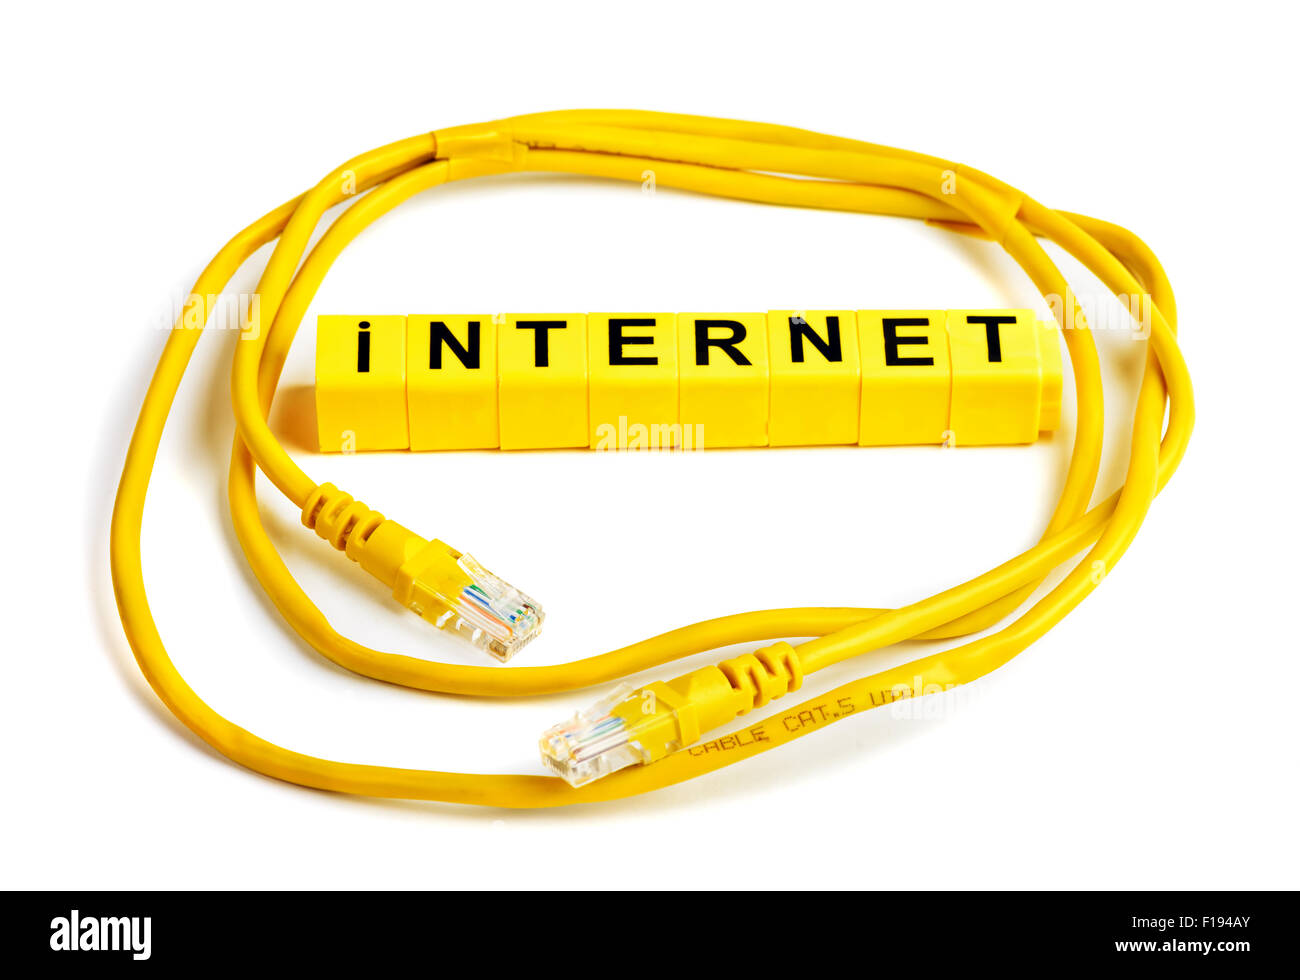 Internet cable cat.5 UPD with RJ45 plug connection - Stock Image